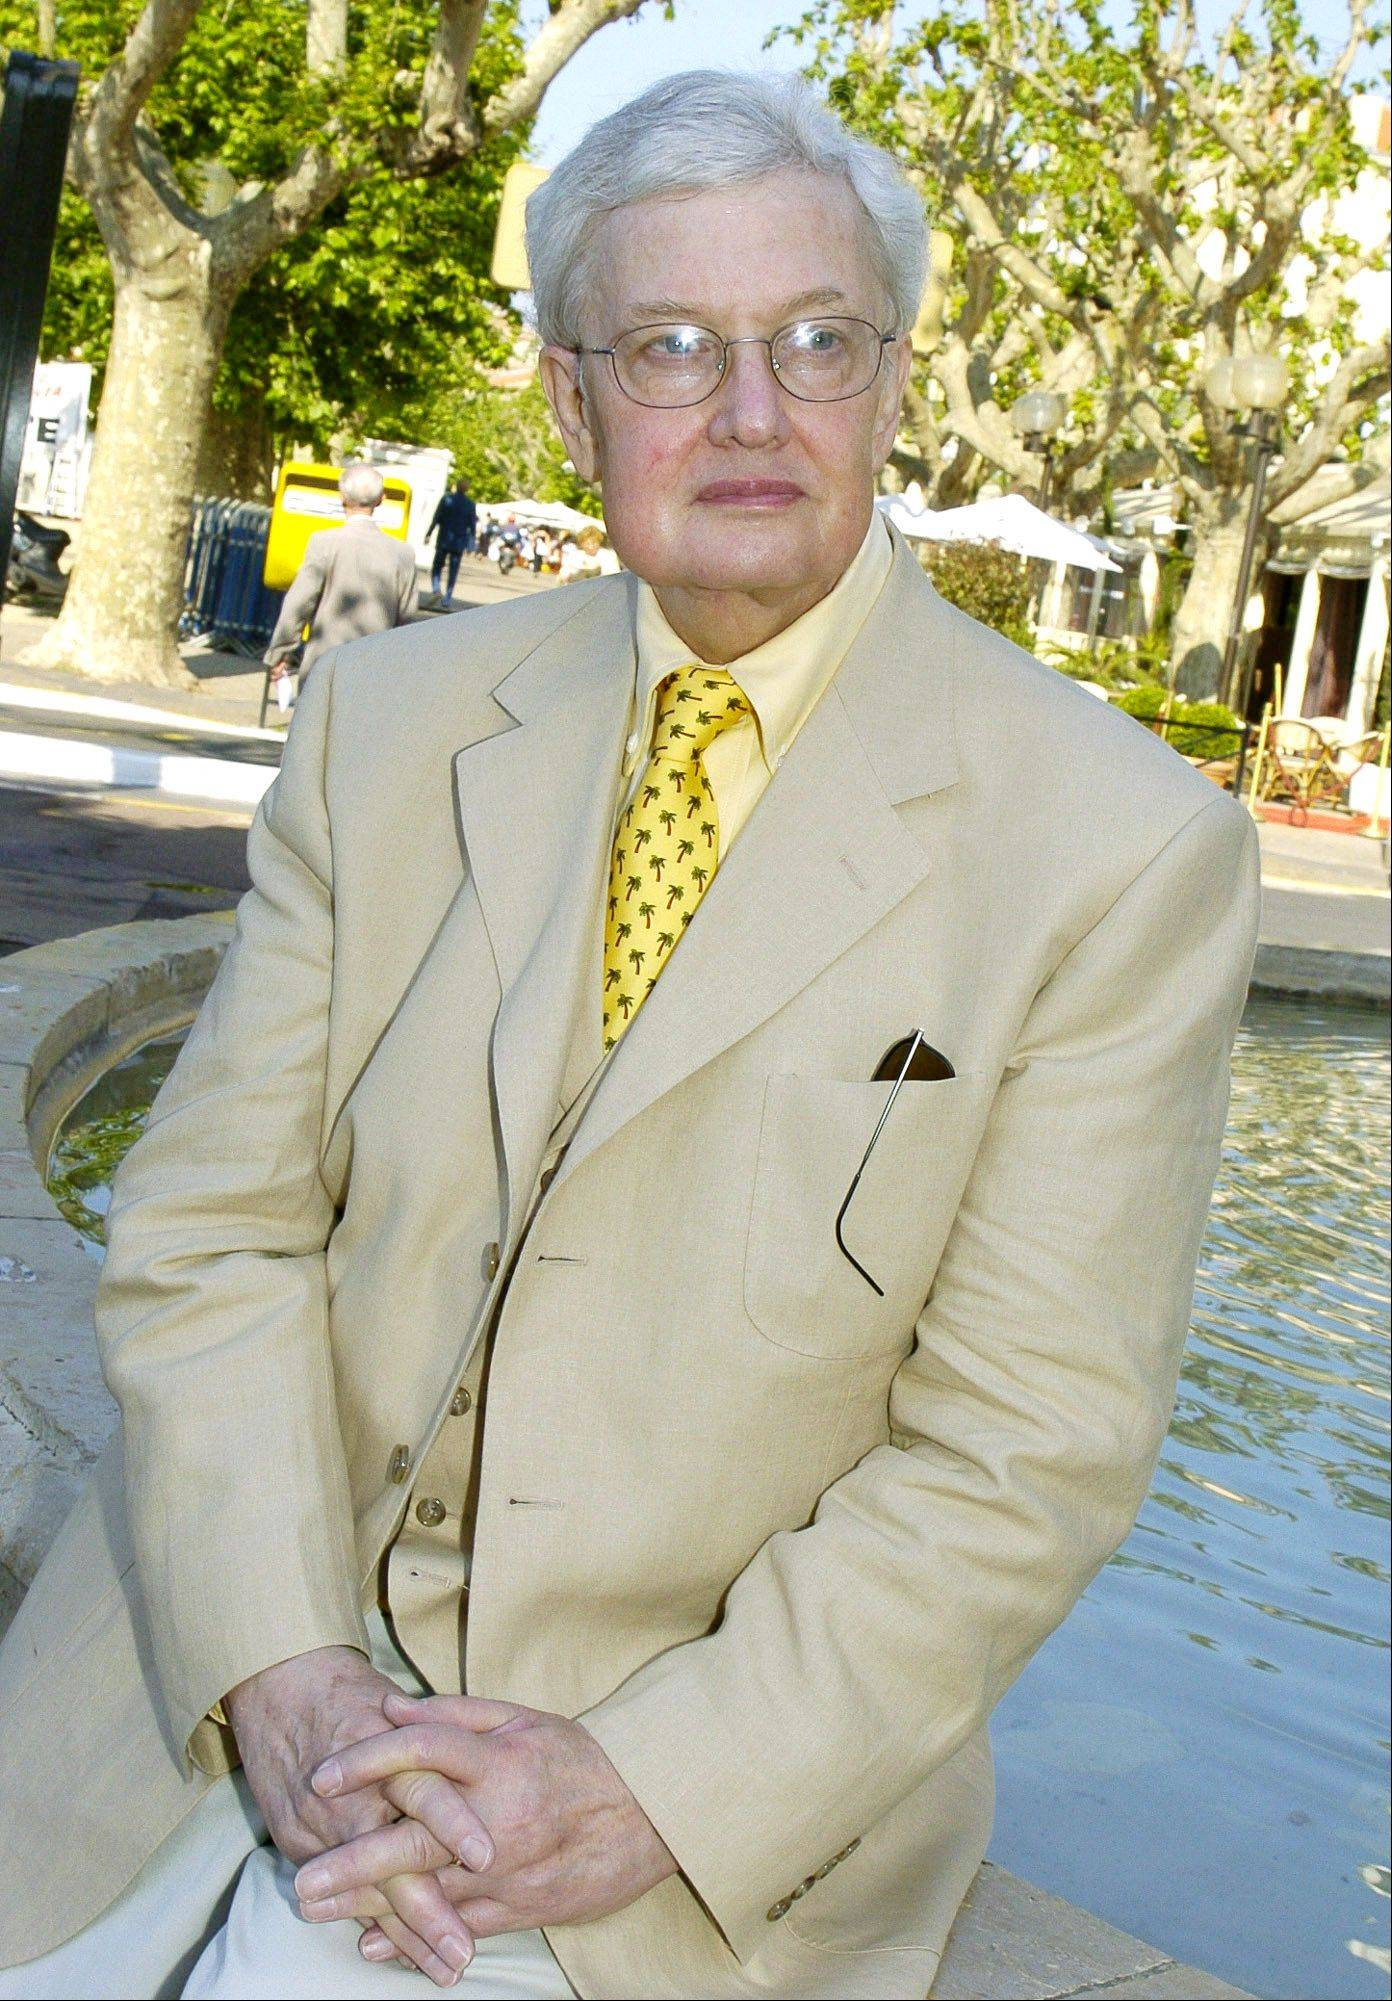 "This May 17, 2004 file photo shows American film critc Roger Ebert, poses at the 57th International Film Festival in Cannes, southern France. The Sundance Institute announced Thursday, Sept. 20, 2012 that Ebert will be the recipient of the Vanguard Leadership Award in recognition of his advocacy of independent film. The award will be presented at the third annual ""Celebrate Sundance Institute"" benefit on June 5, in Los Angeles."